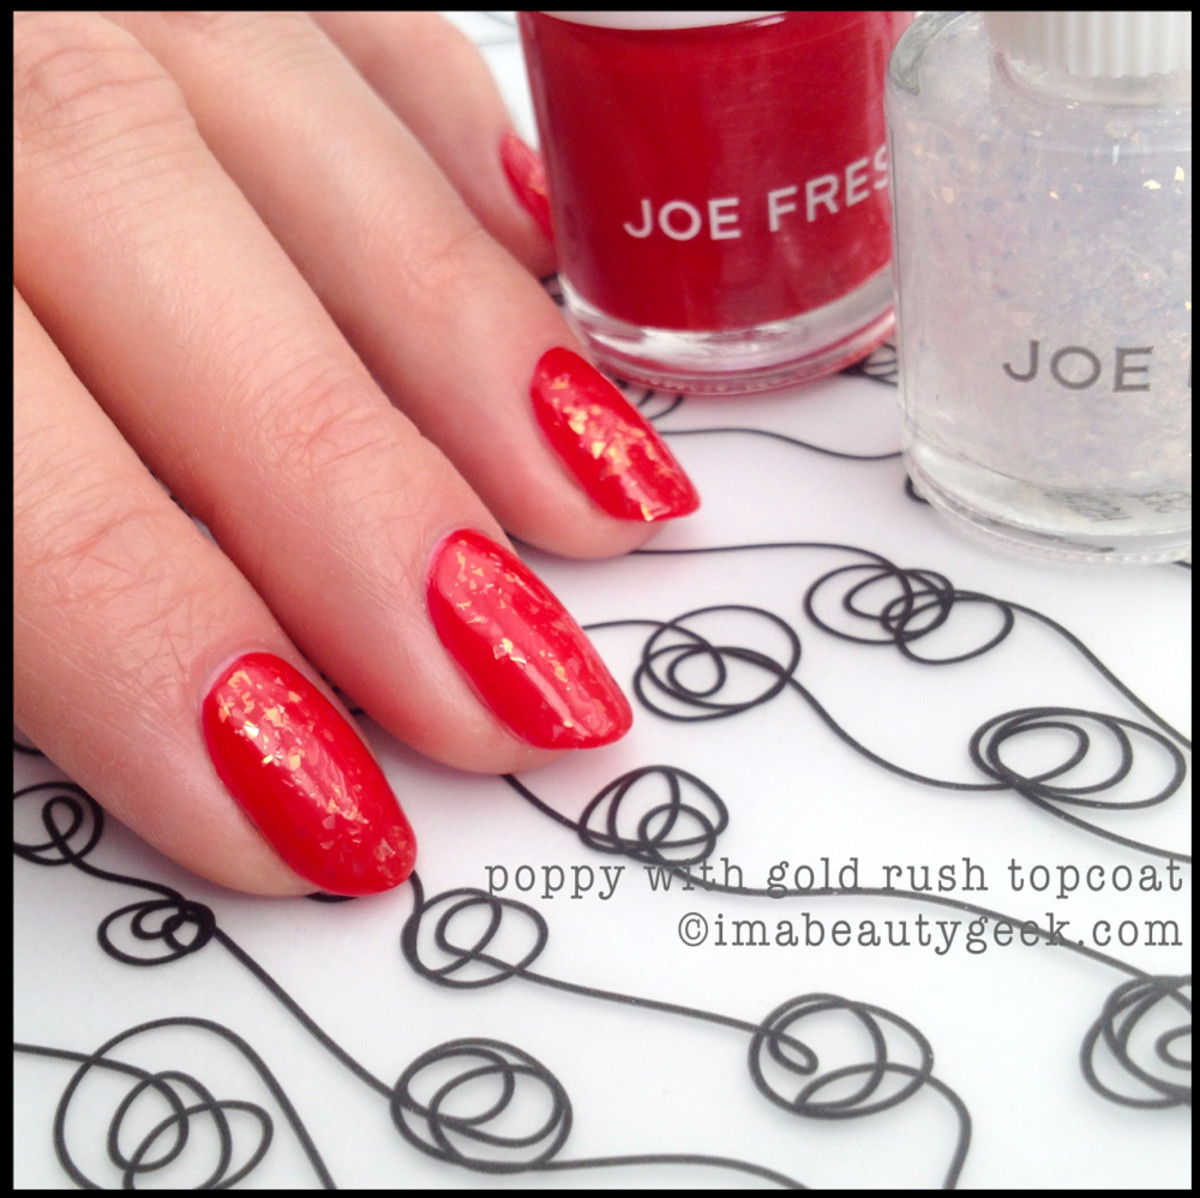 Joe Fresh Polish Poppy with Gold Rush Topcoat